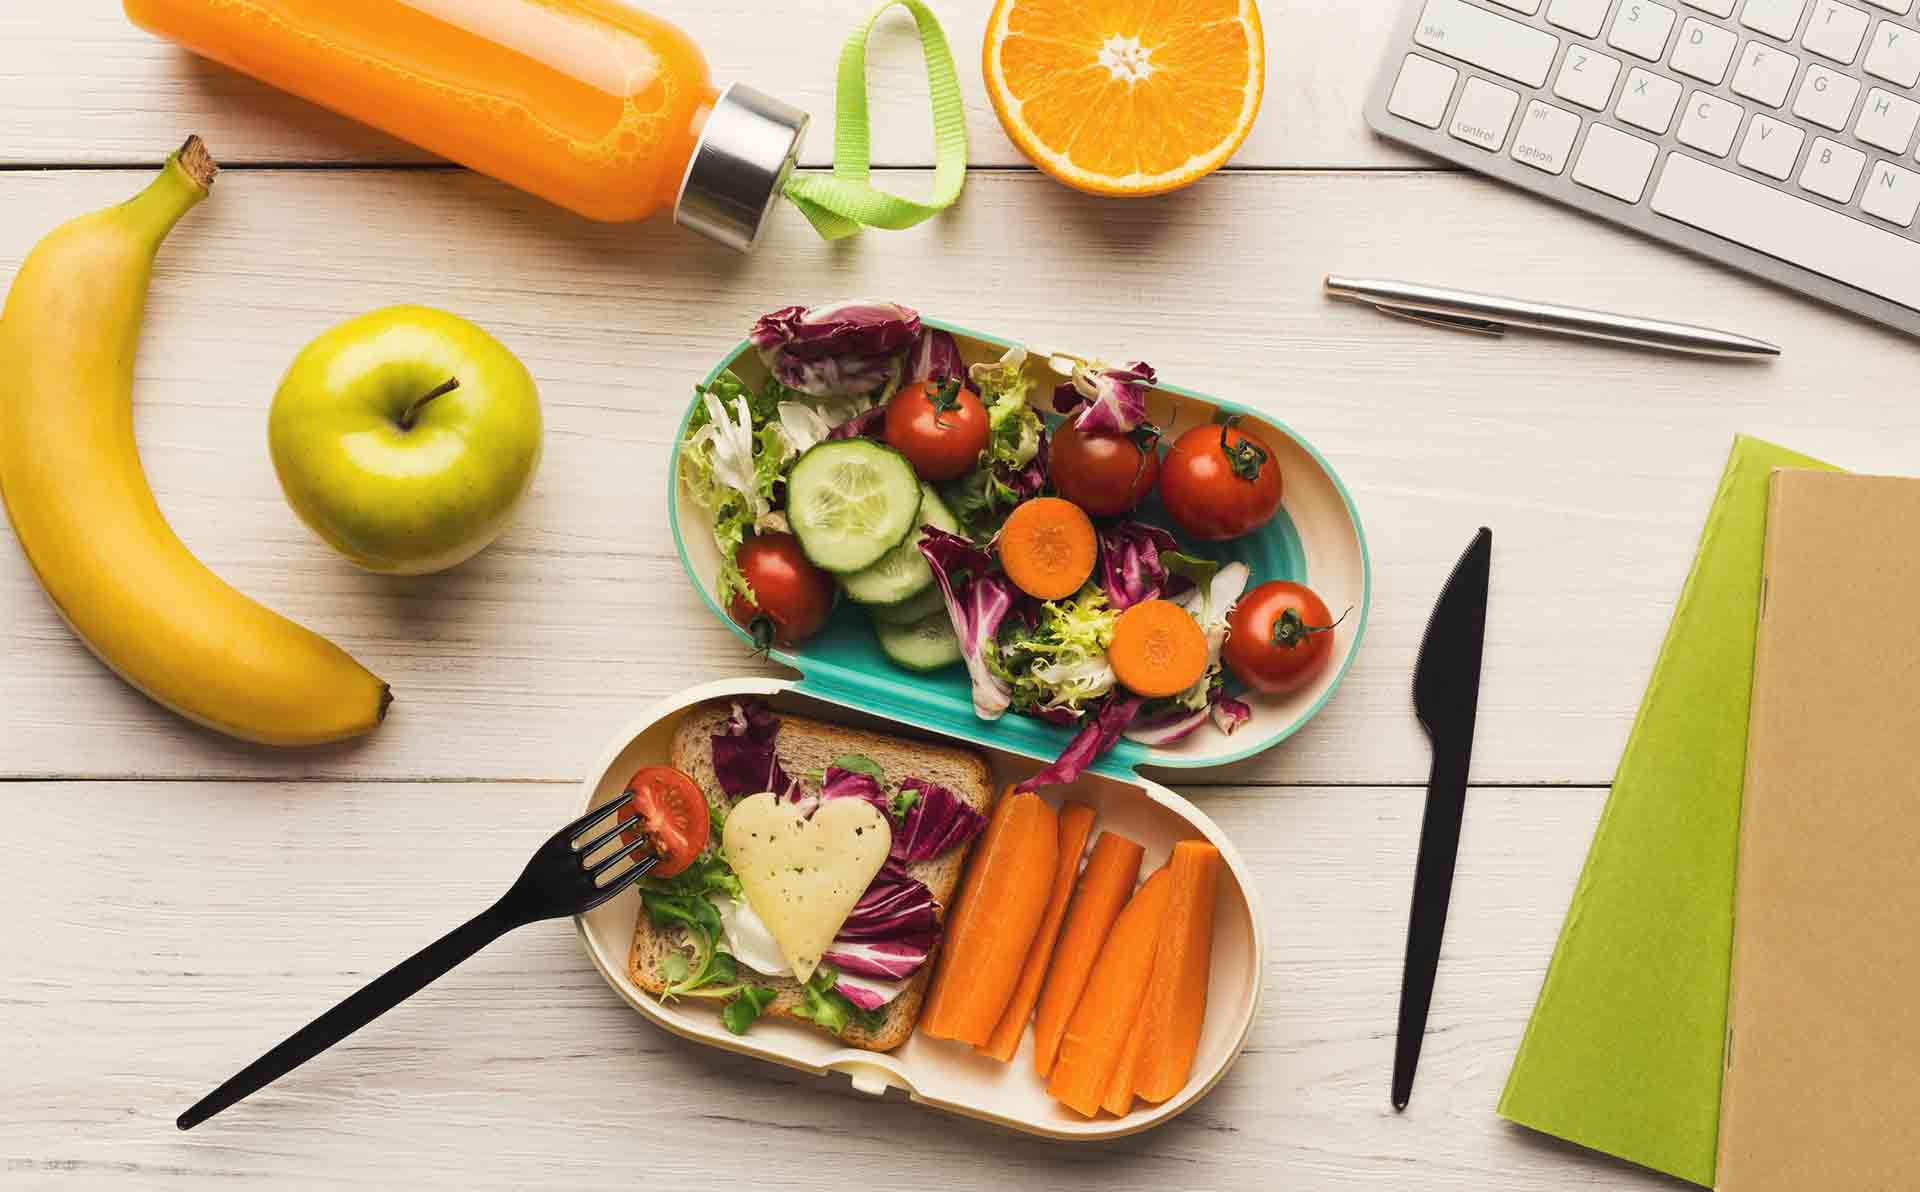 be_does your workplace promote healthy eating